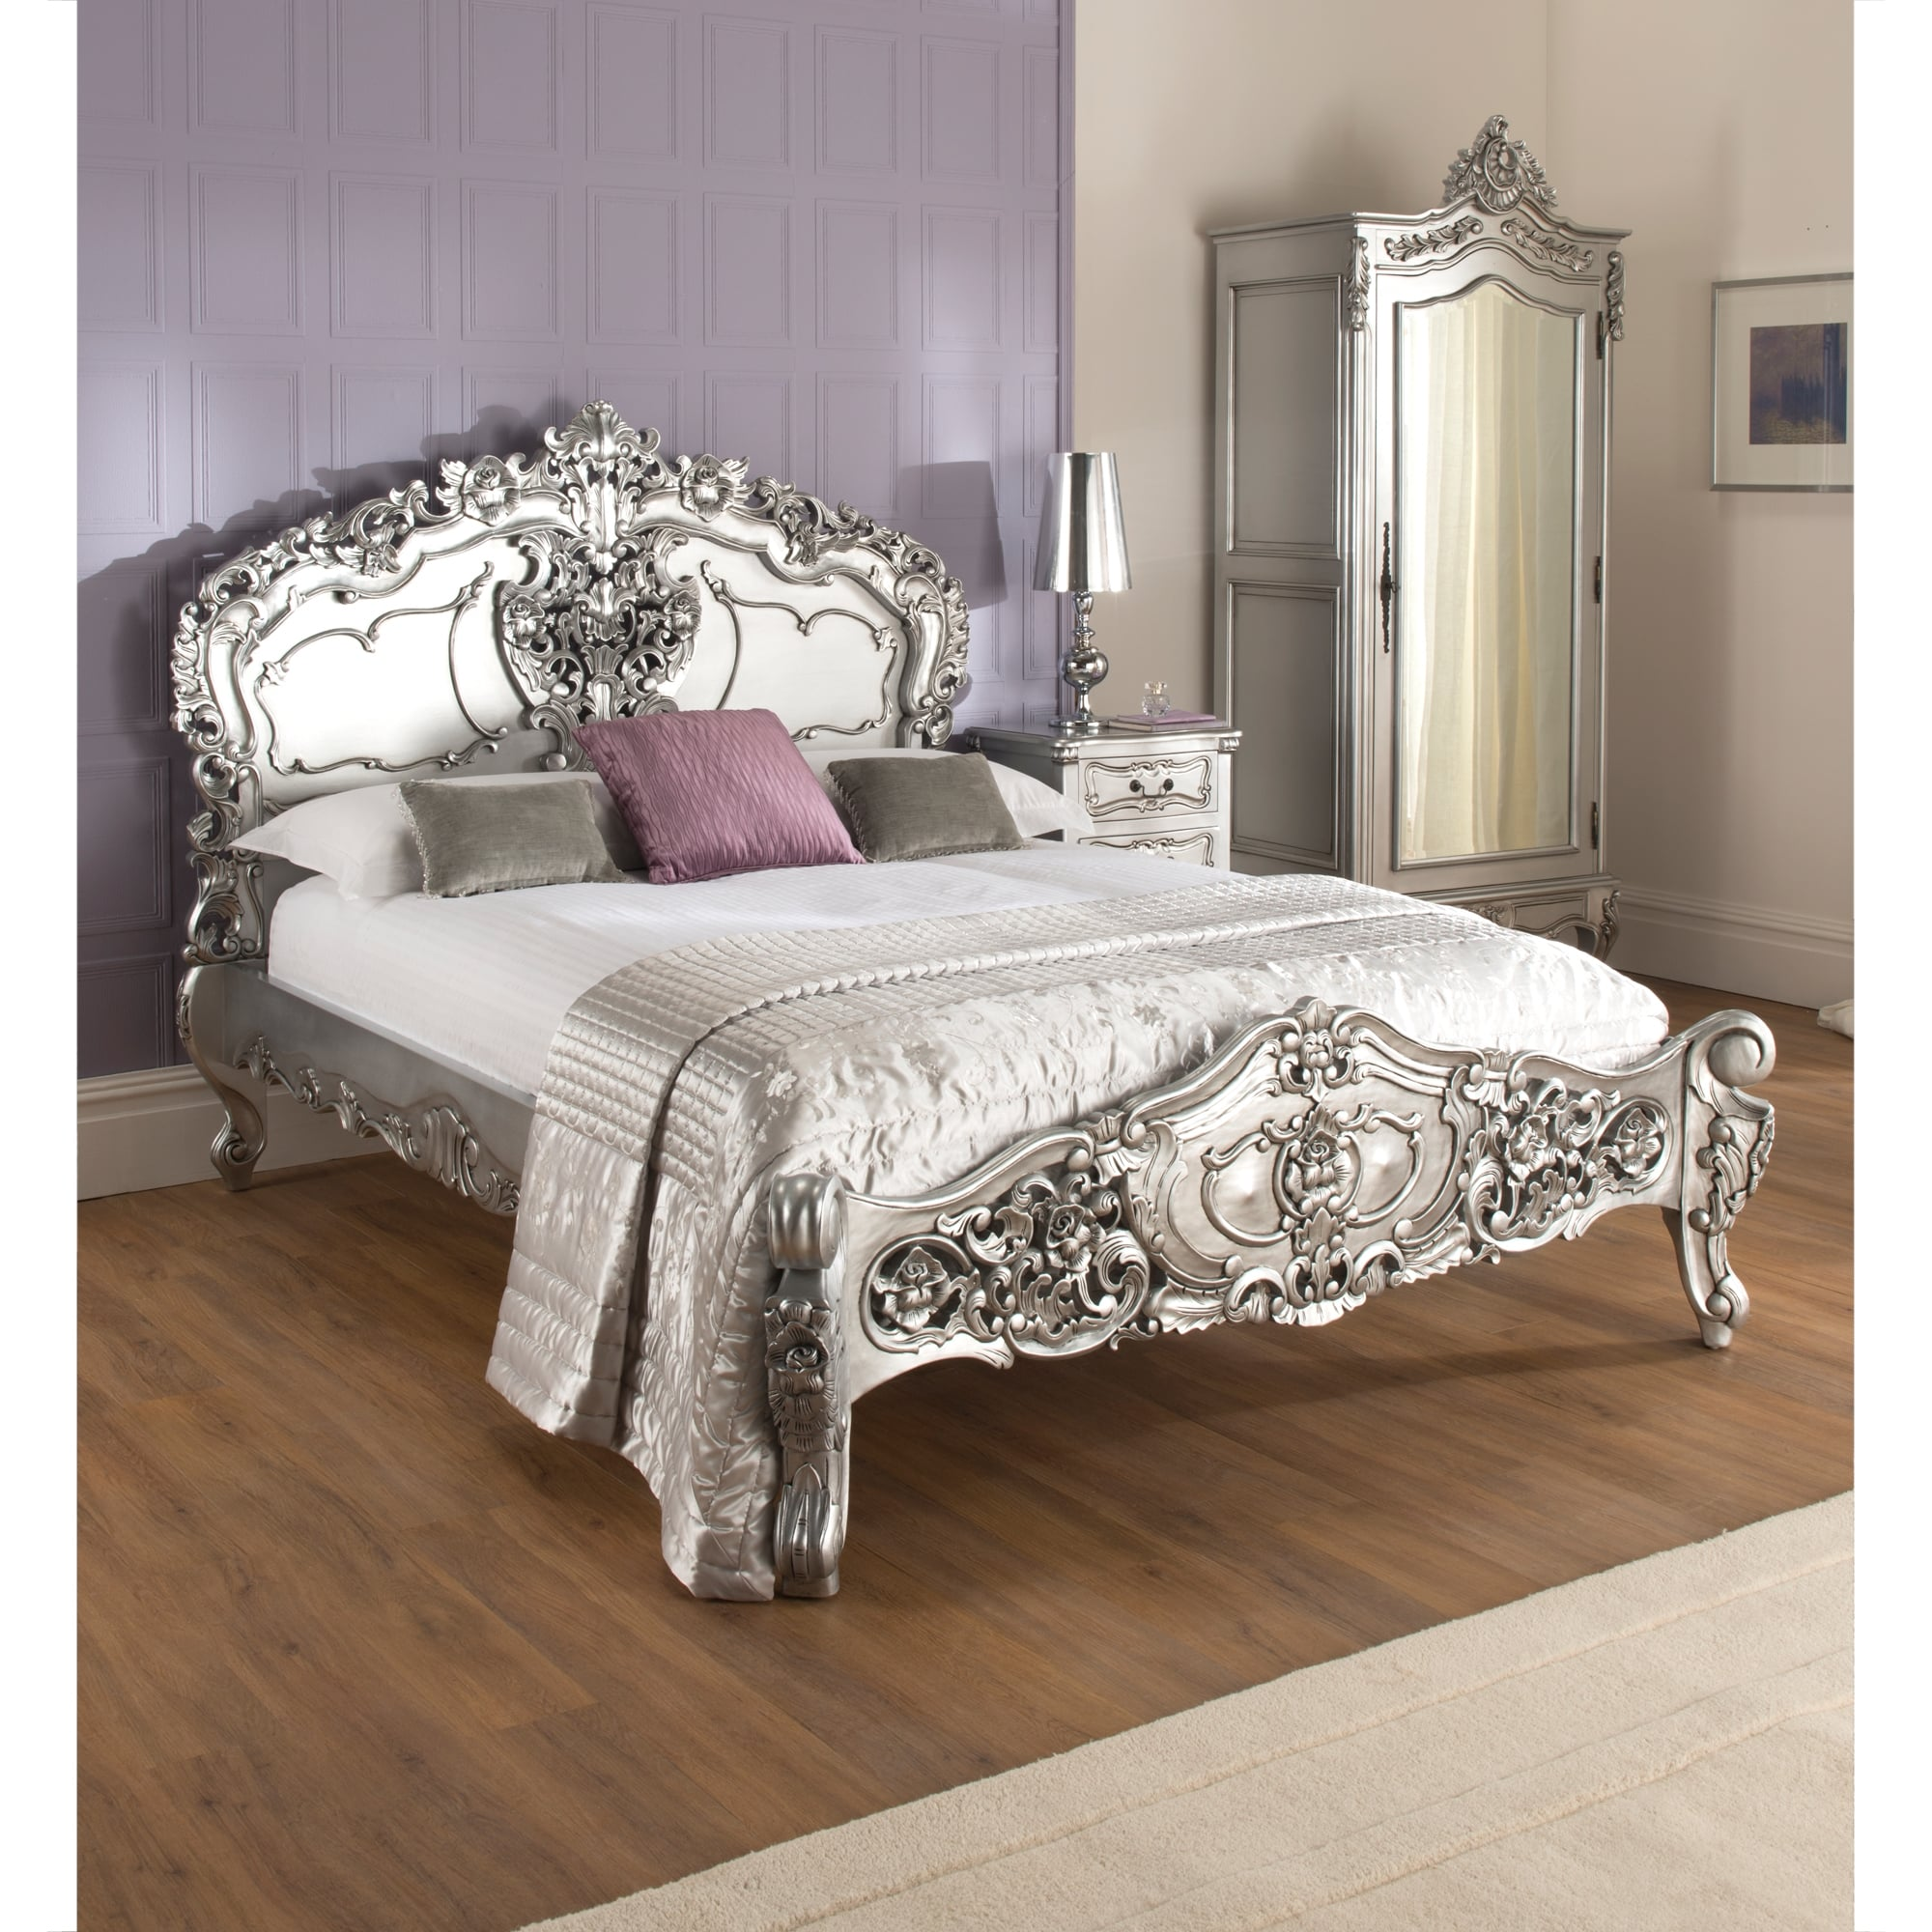 Mirrored bedroom furniture ciupa biksemad for French baroque bed